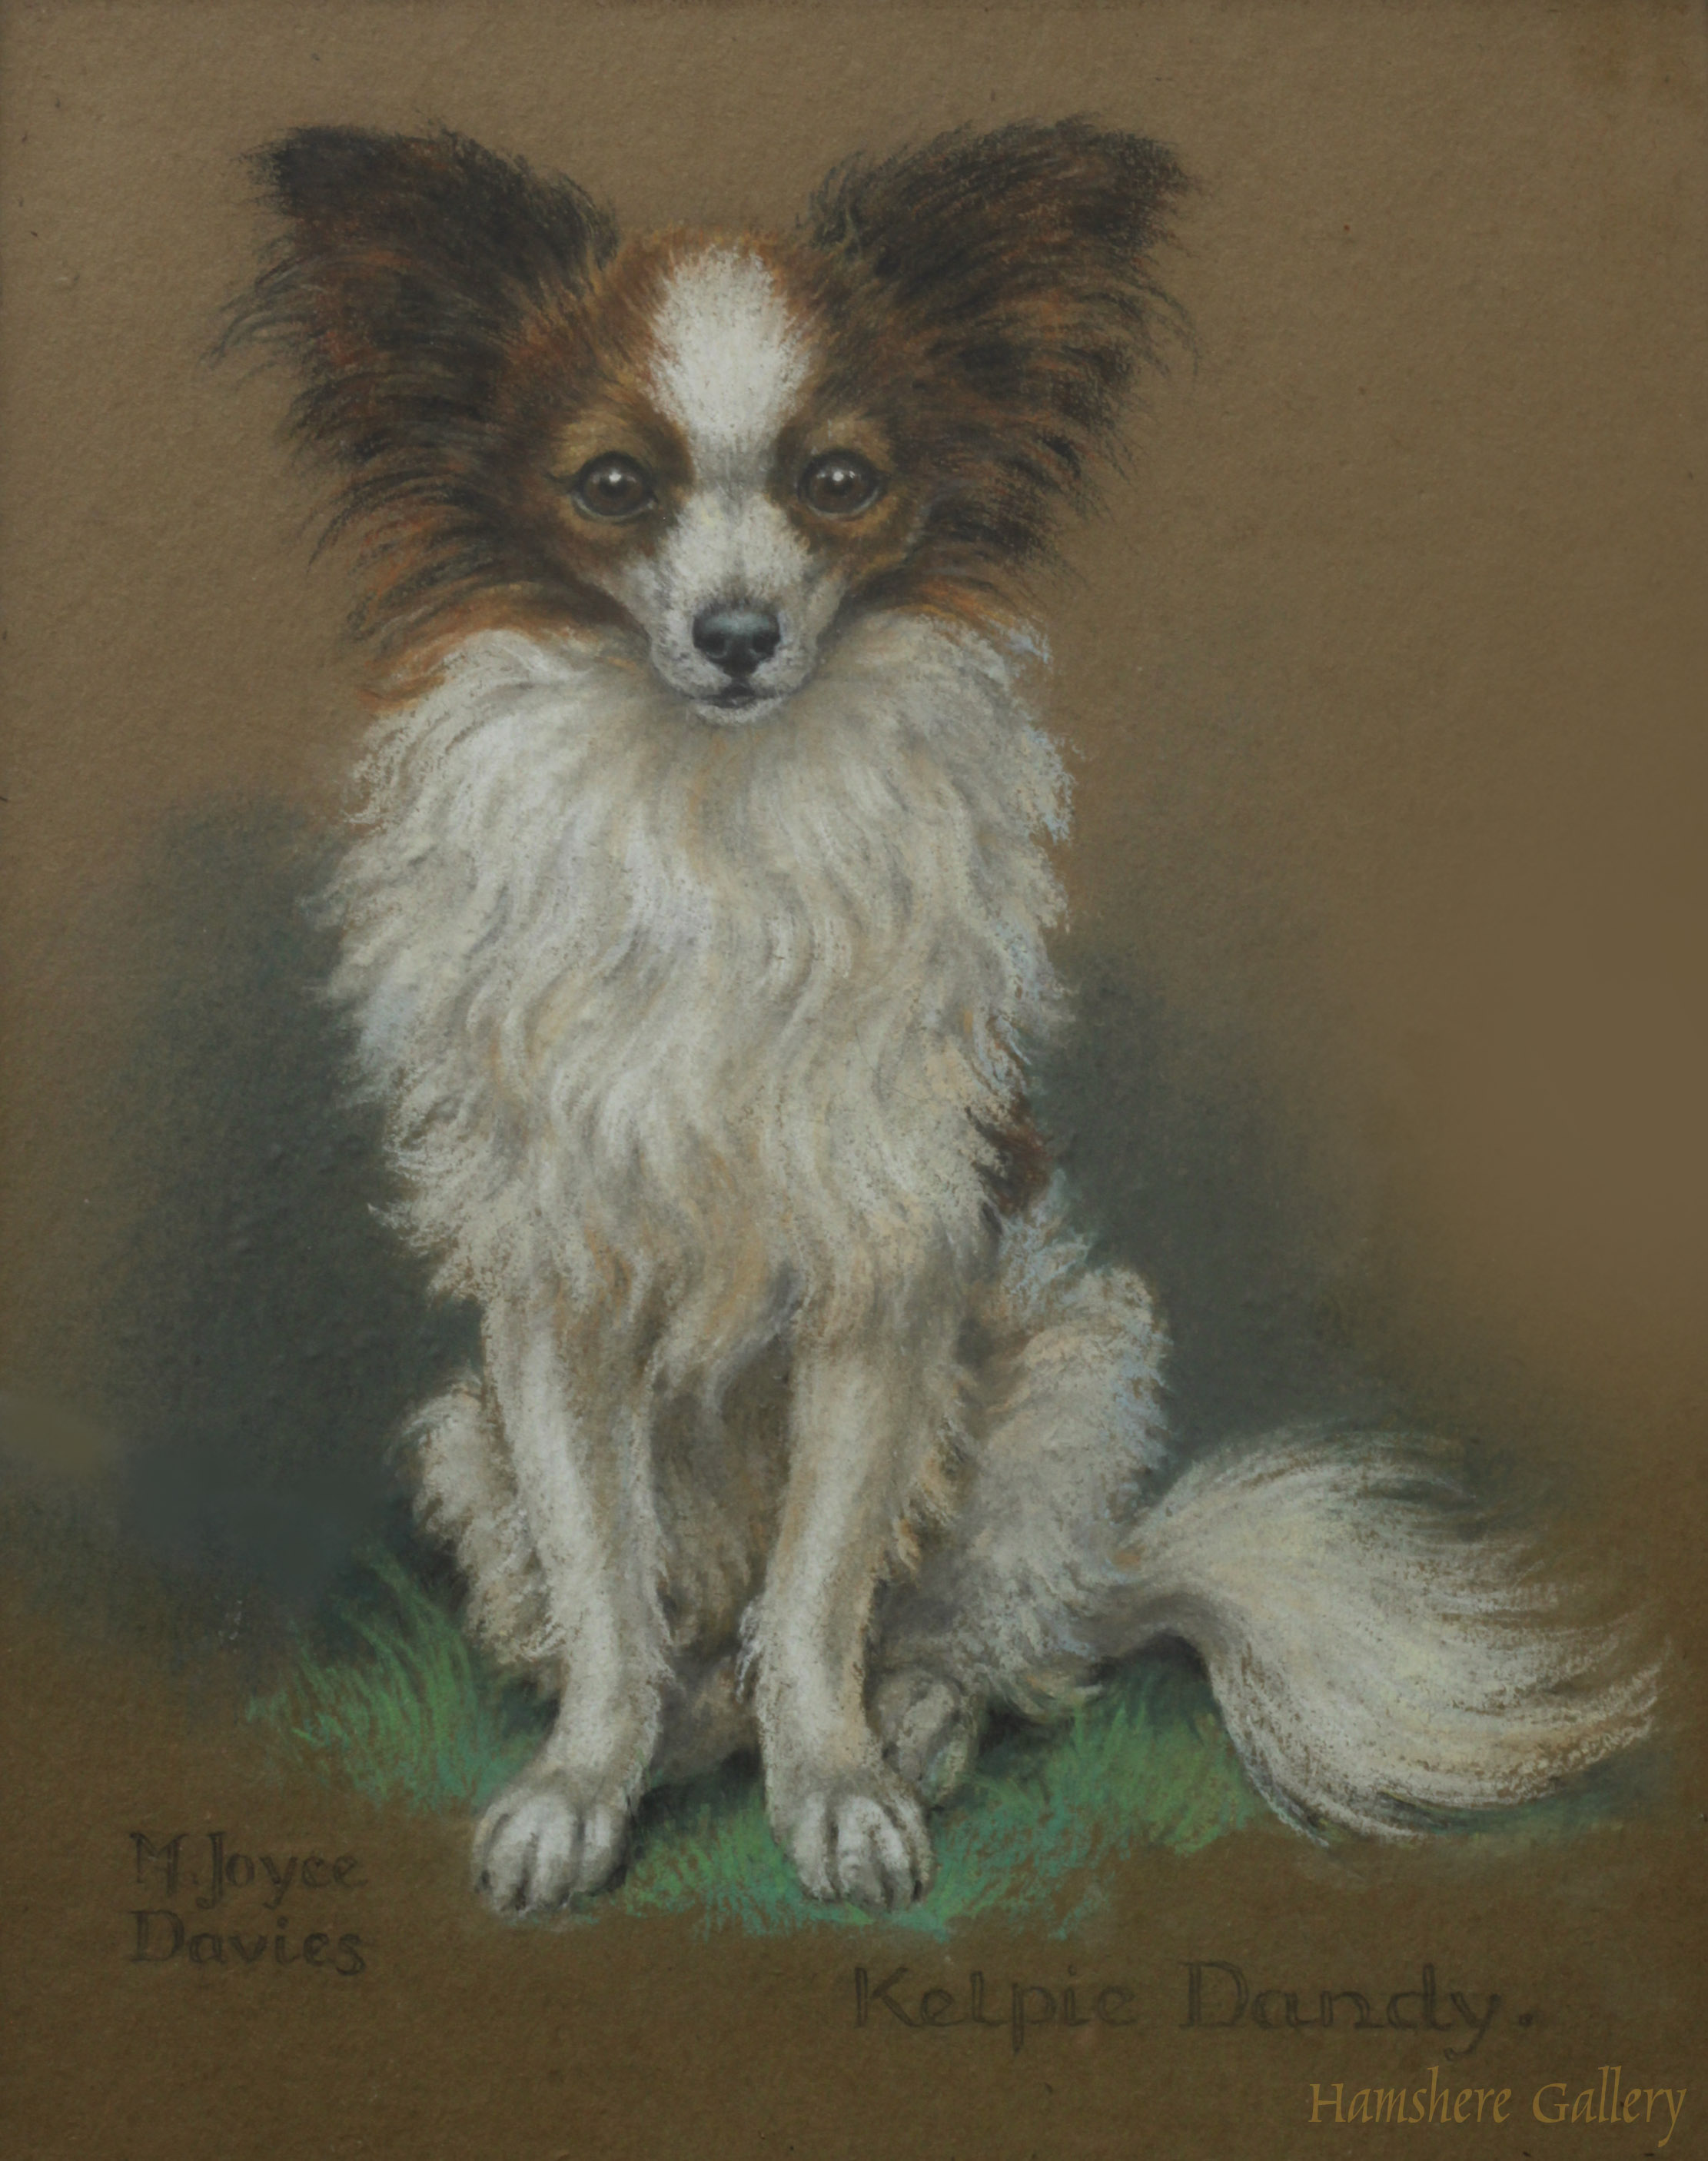 Click to see full size: Papillion pastel by M Joyce Davies